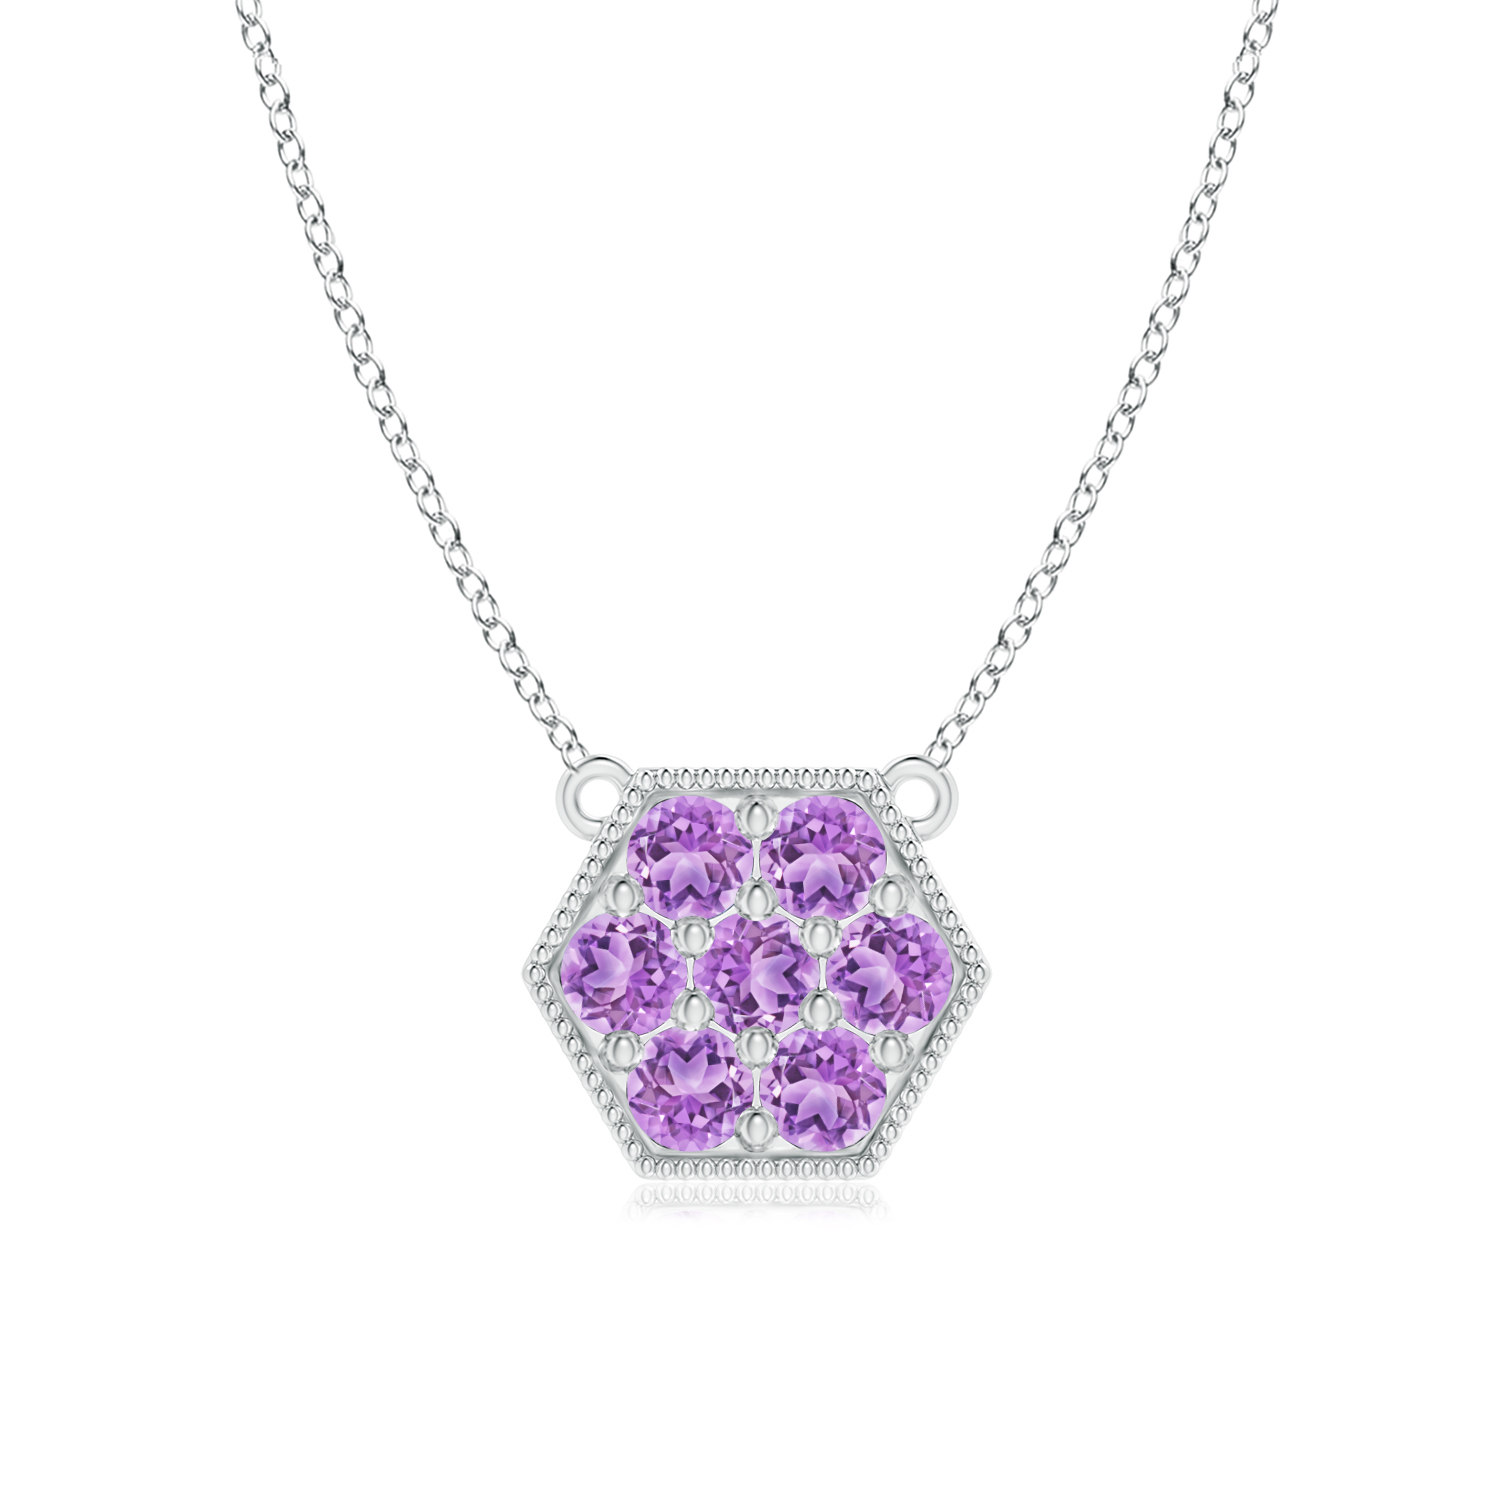 February Birthstone Pendant Necklaces Pave Set Amethyst Hexagon Necklace Pendant with Milgrain in 14K Rose Gold (2mm... by Angara.com